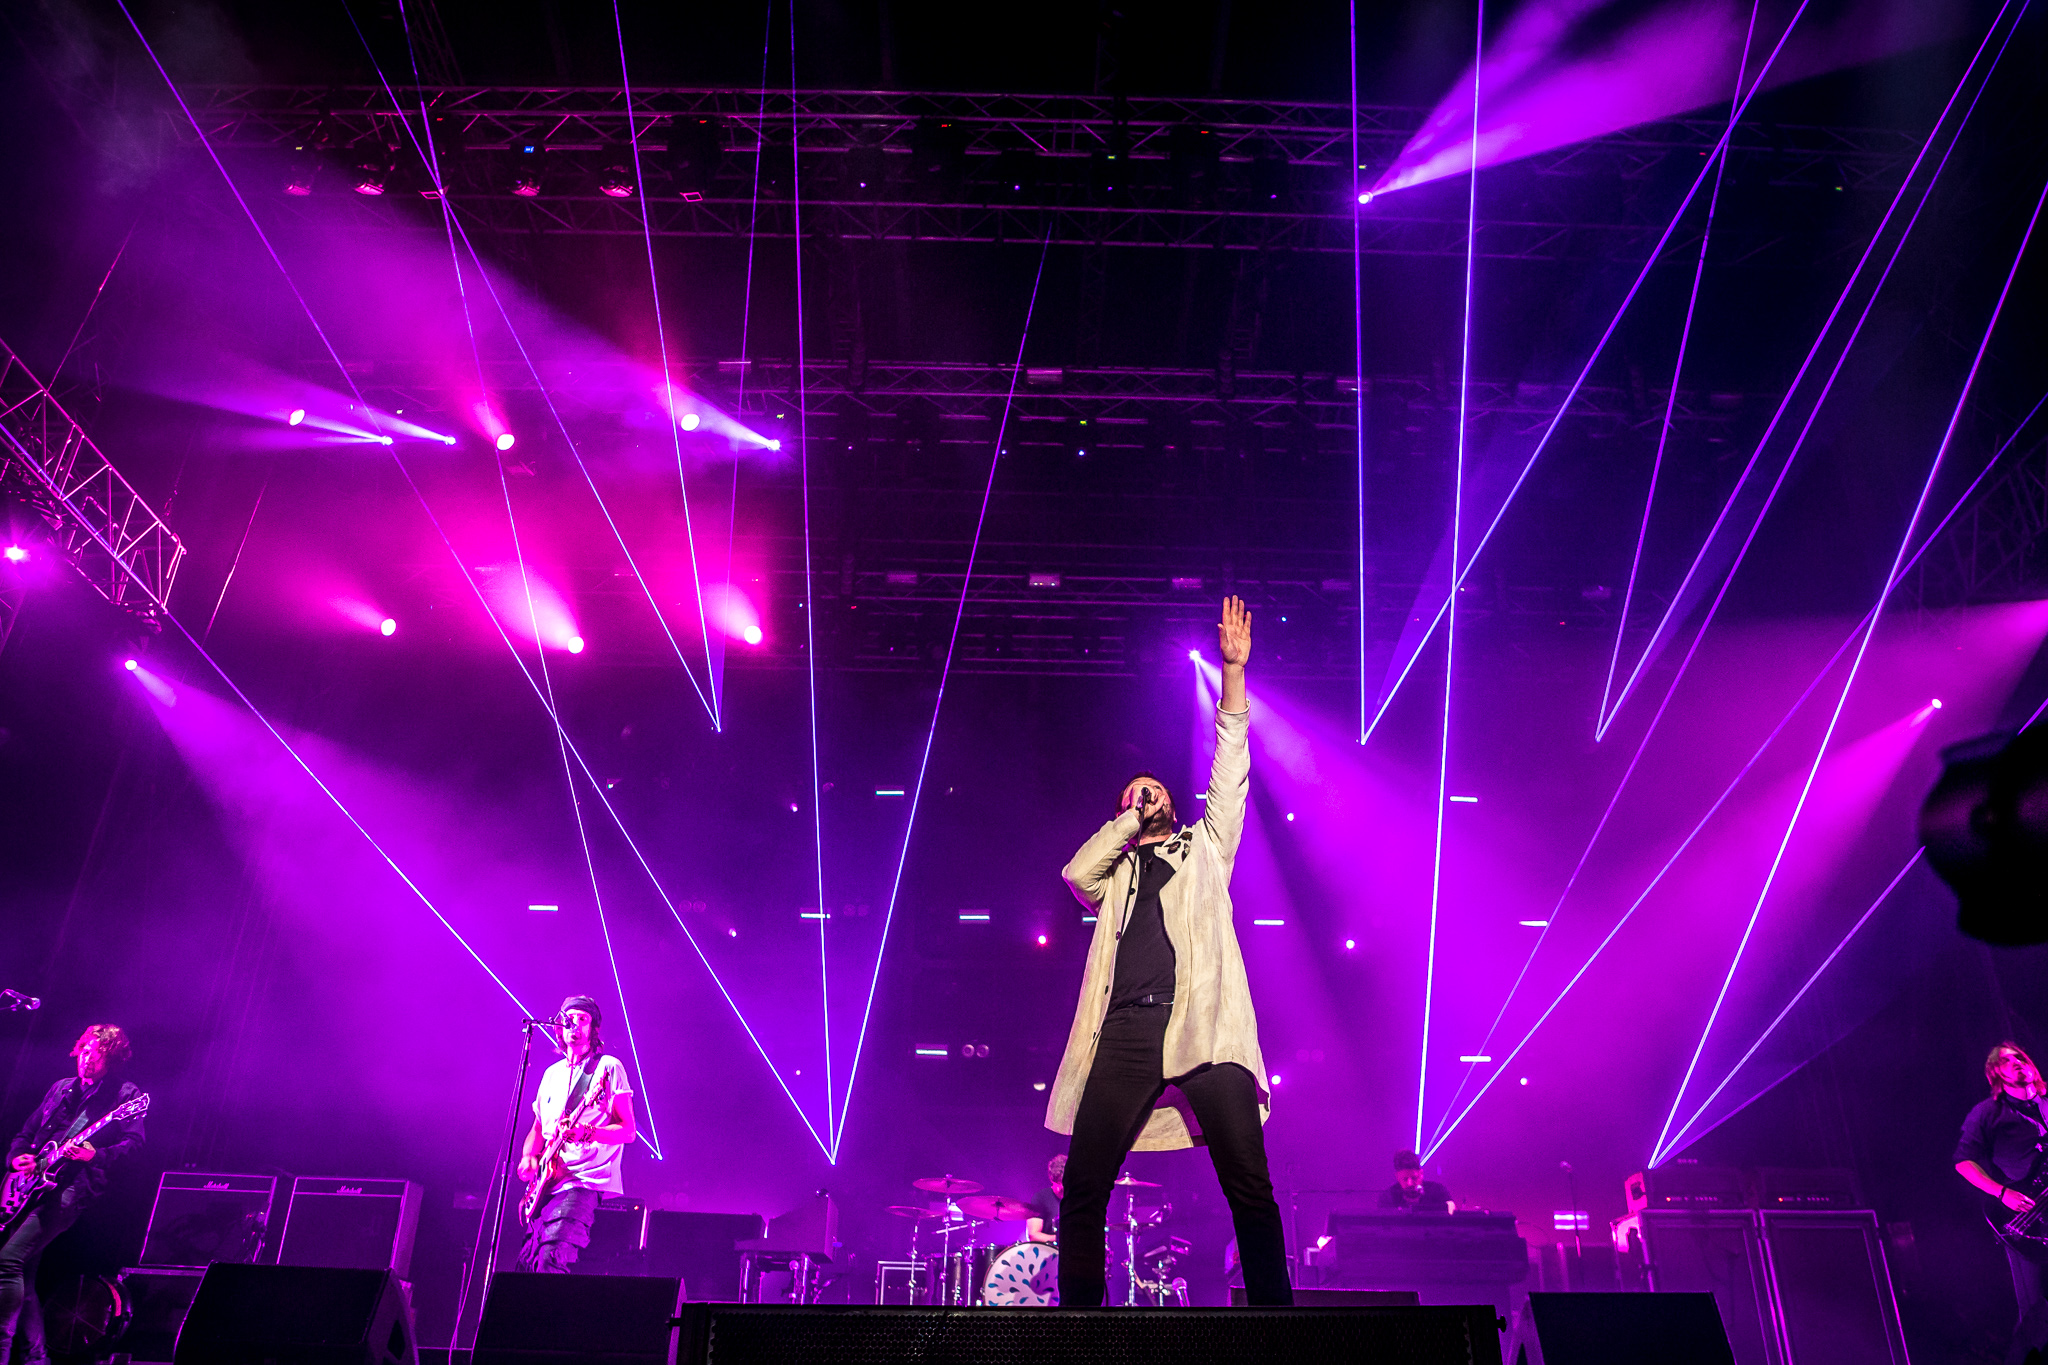 Arcade Fire and Kasabian reign supreme while Kings of Leon phone it in at INMusic Festival